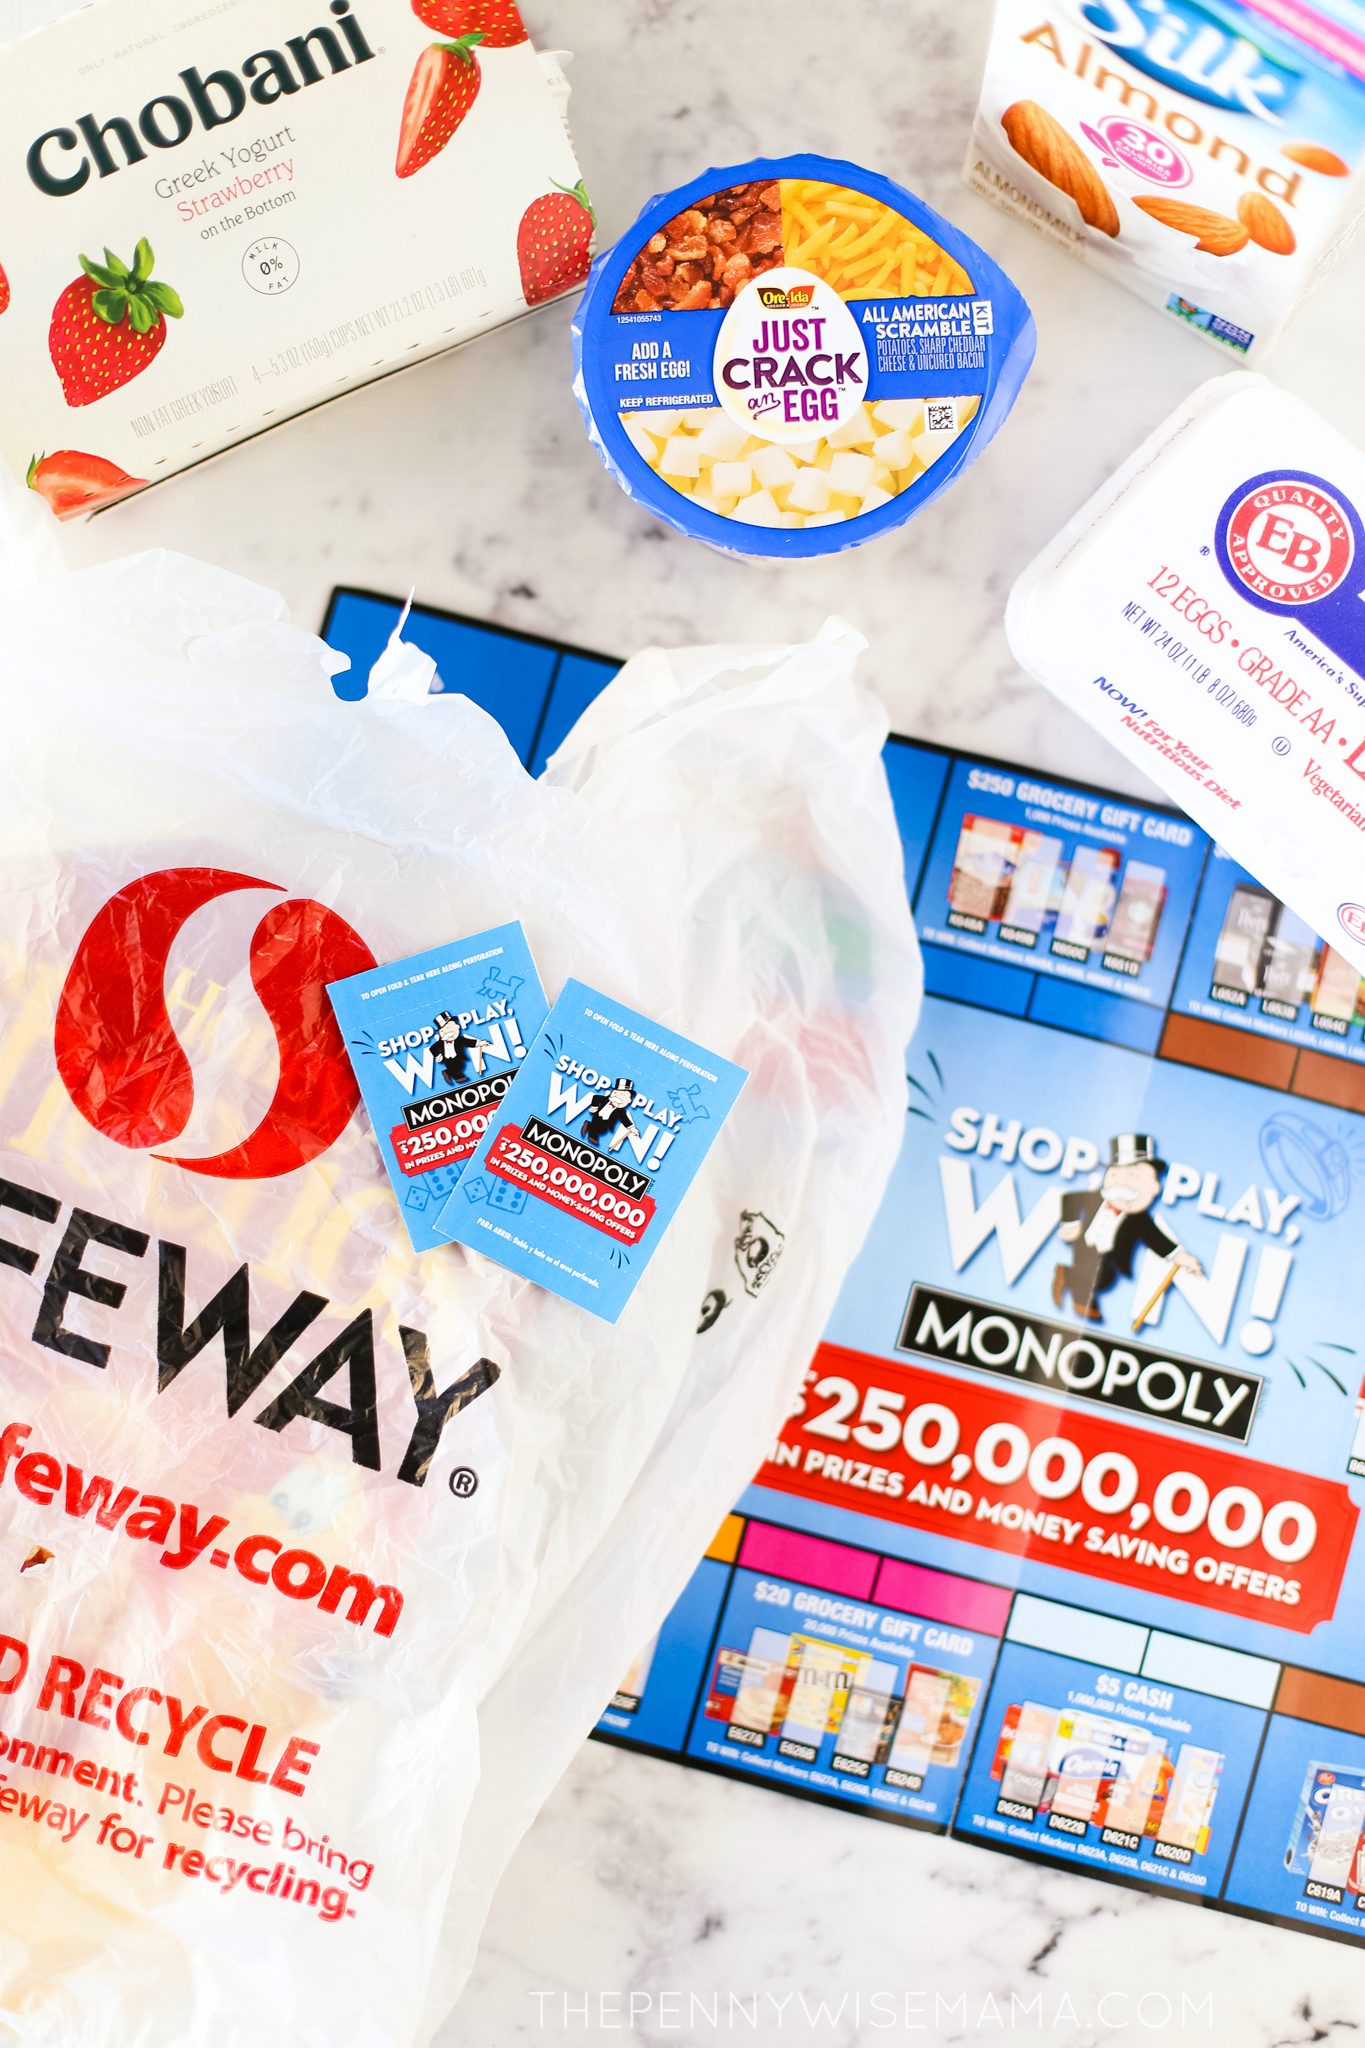 How to Play Shop, Play, Win Monopoly at Safeway